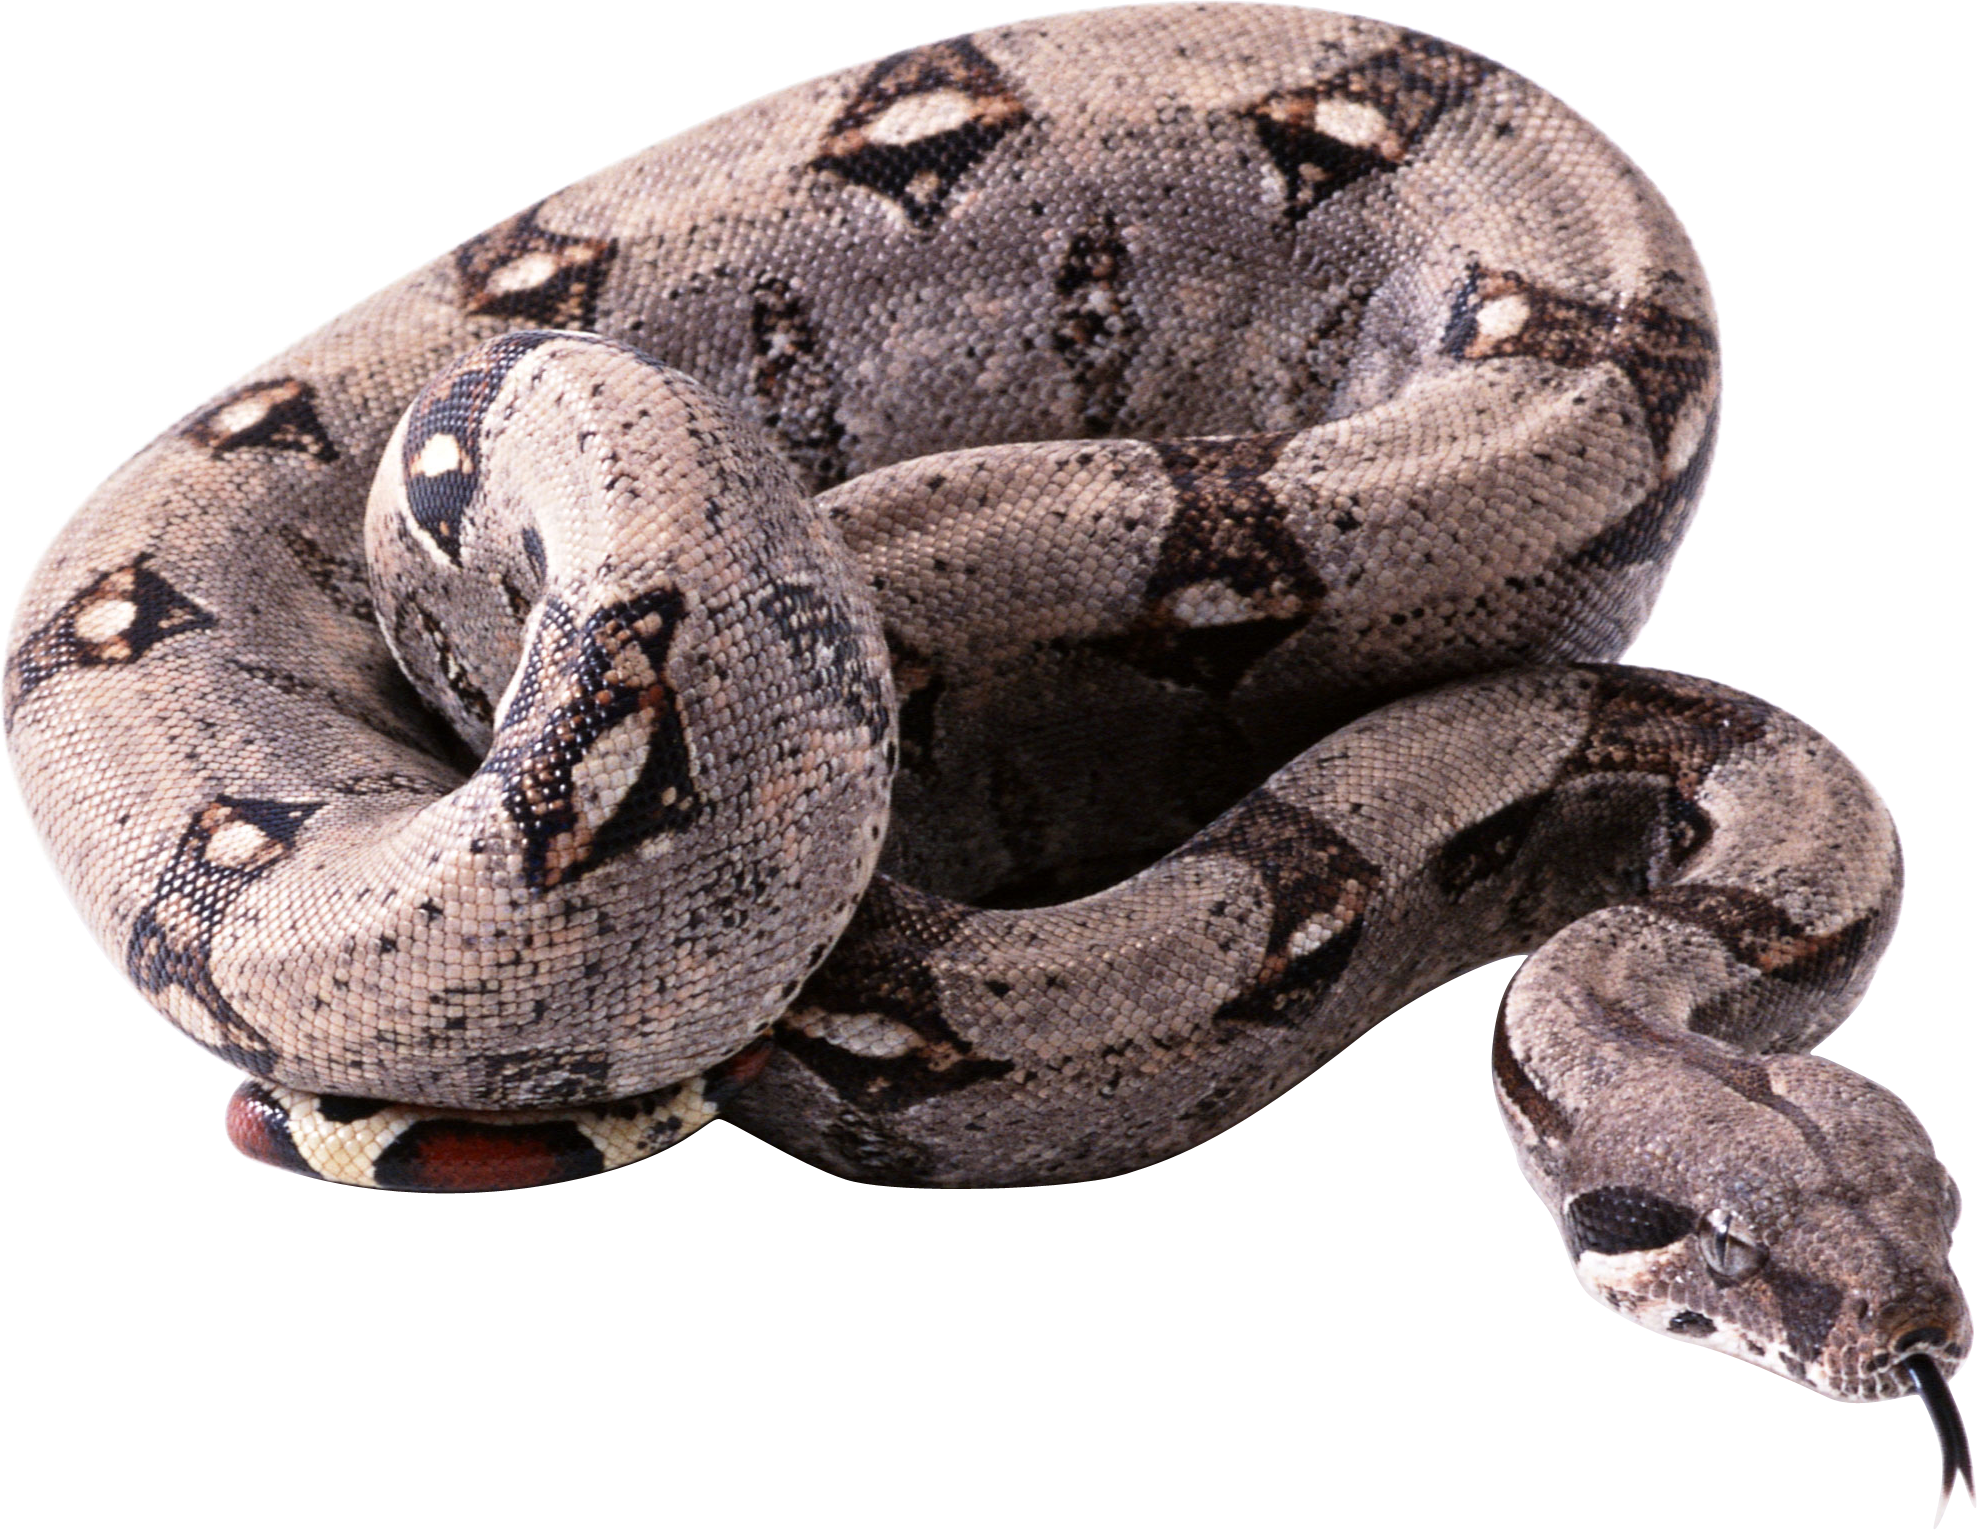 Snake clipart boa constrictor. Png in high resolution